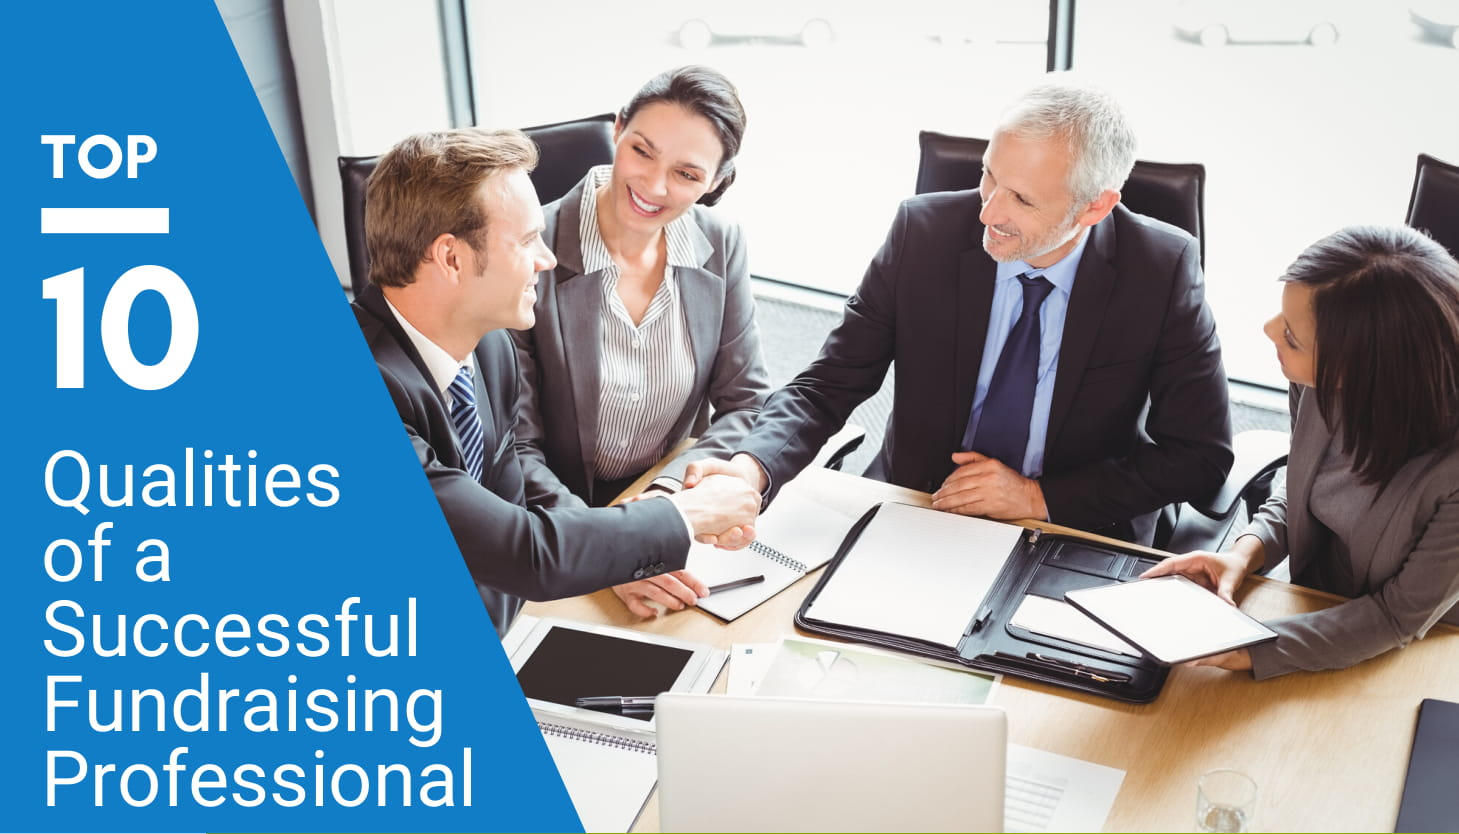 Top 10 Qualities of a Successful Fundraising Professional